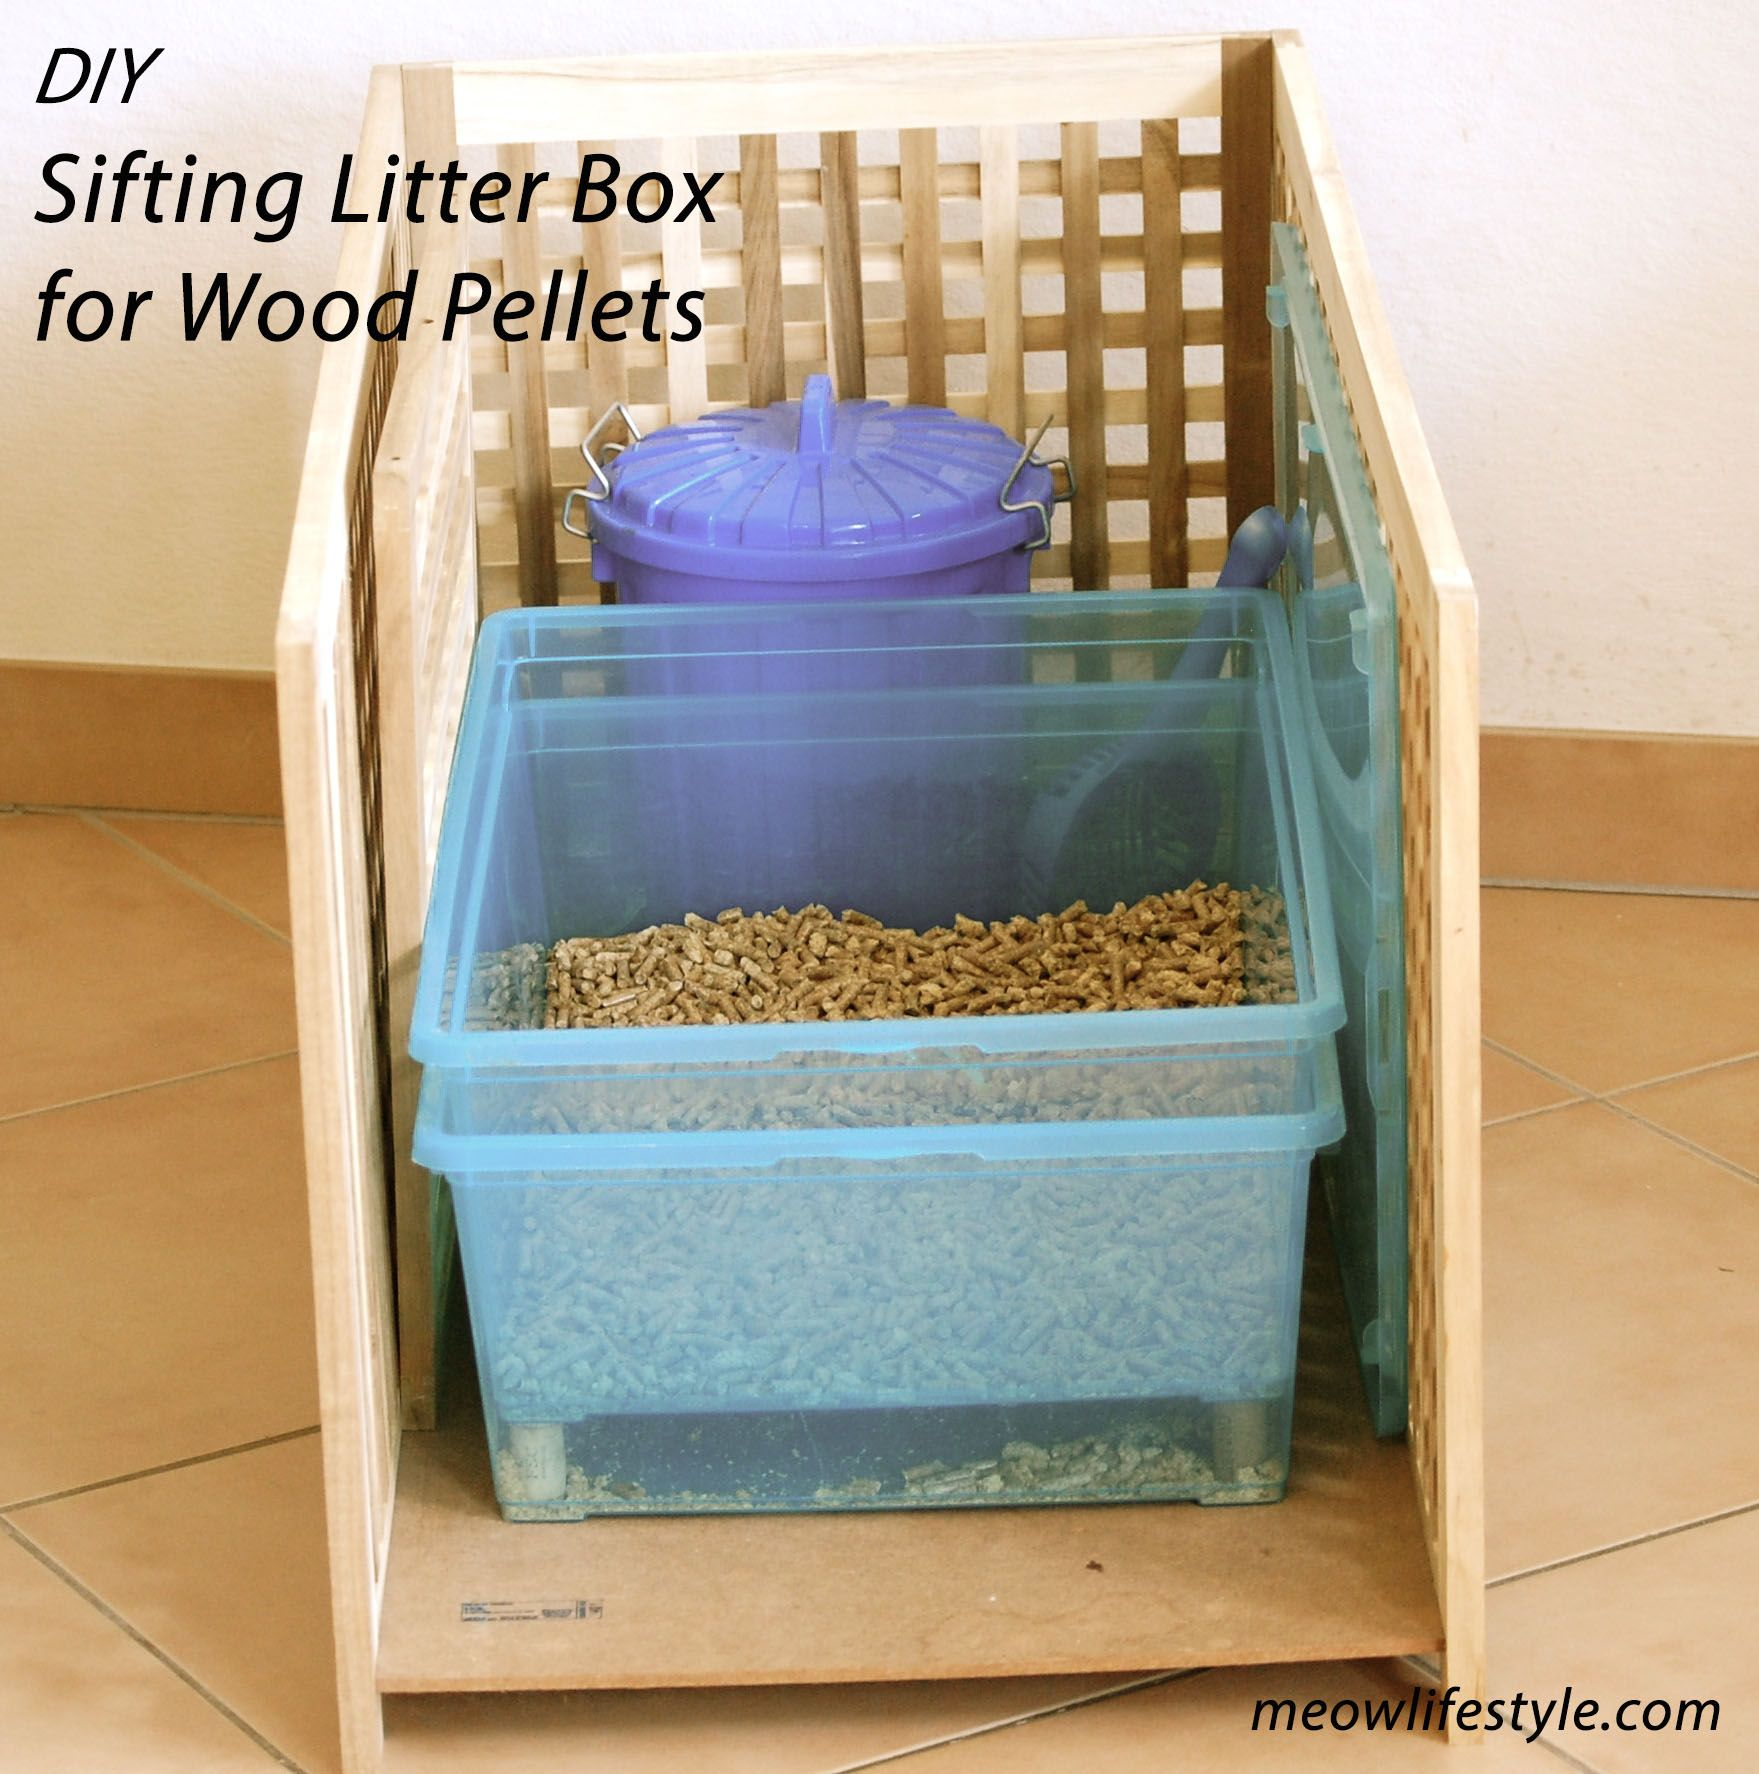 Diy Wood Pellet Litter Box Litter Box Diy Litter Box Wood Pellets